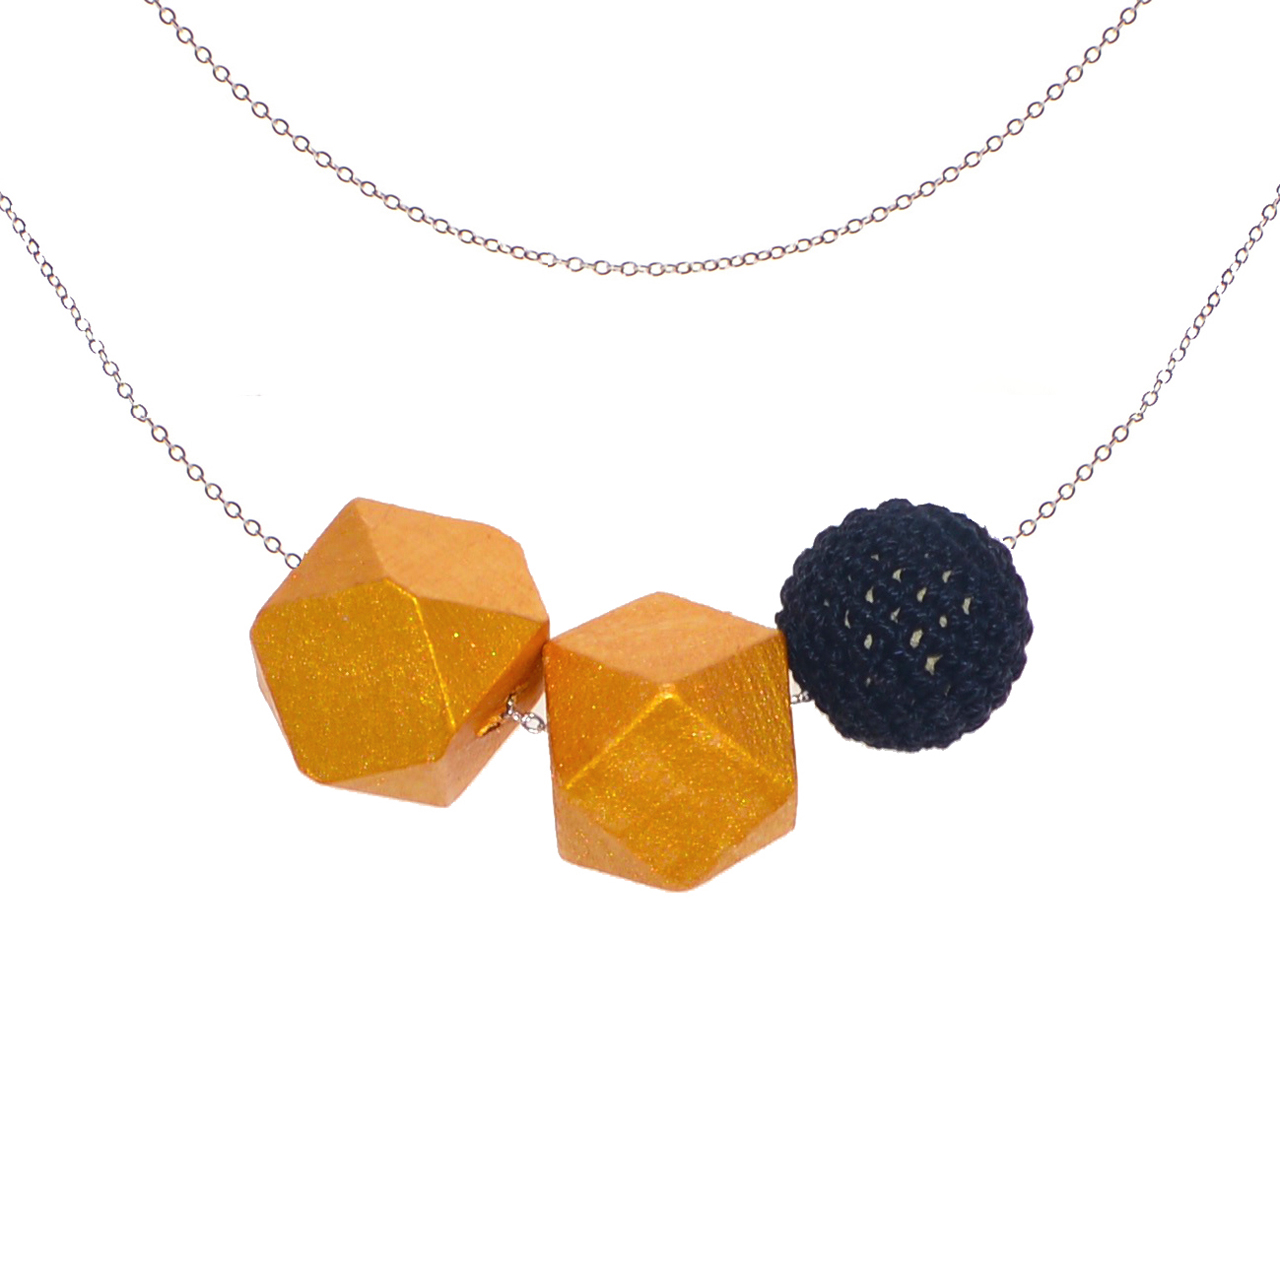 Mon Bijou - Necklace Night Out 3 charcoal | The Design Gift Shop